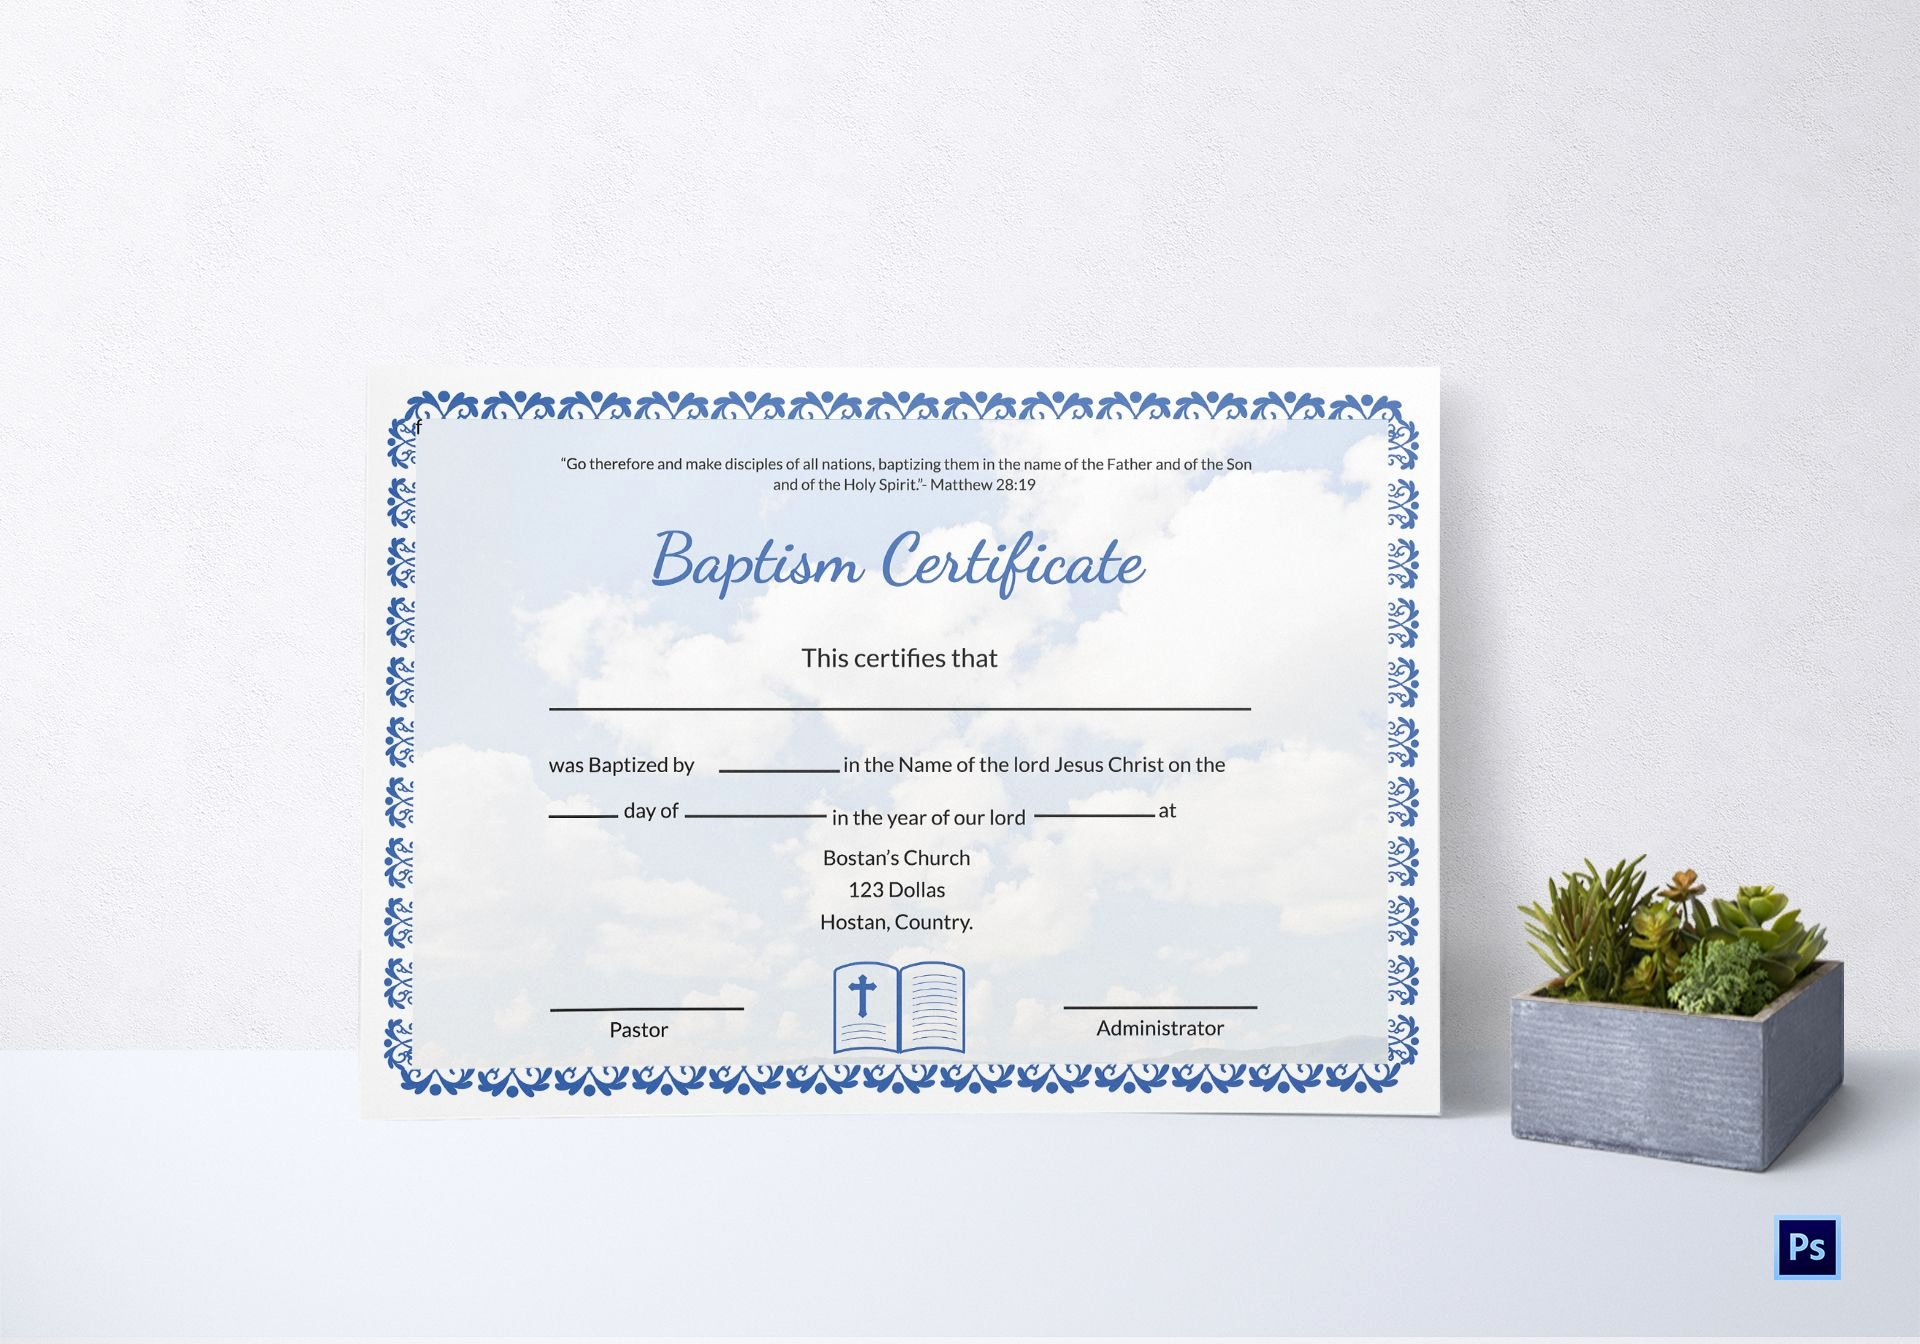 Baptism Certificate Template Word Lovely Editable Baptism Certificate Template In Adobe Shop